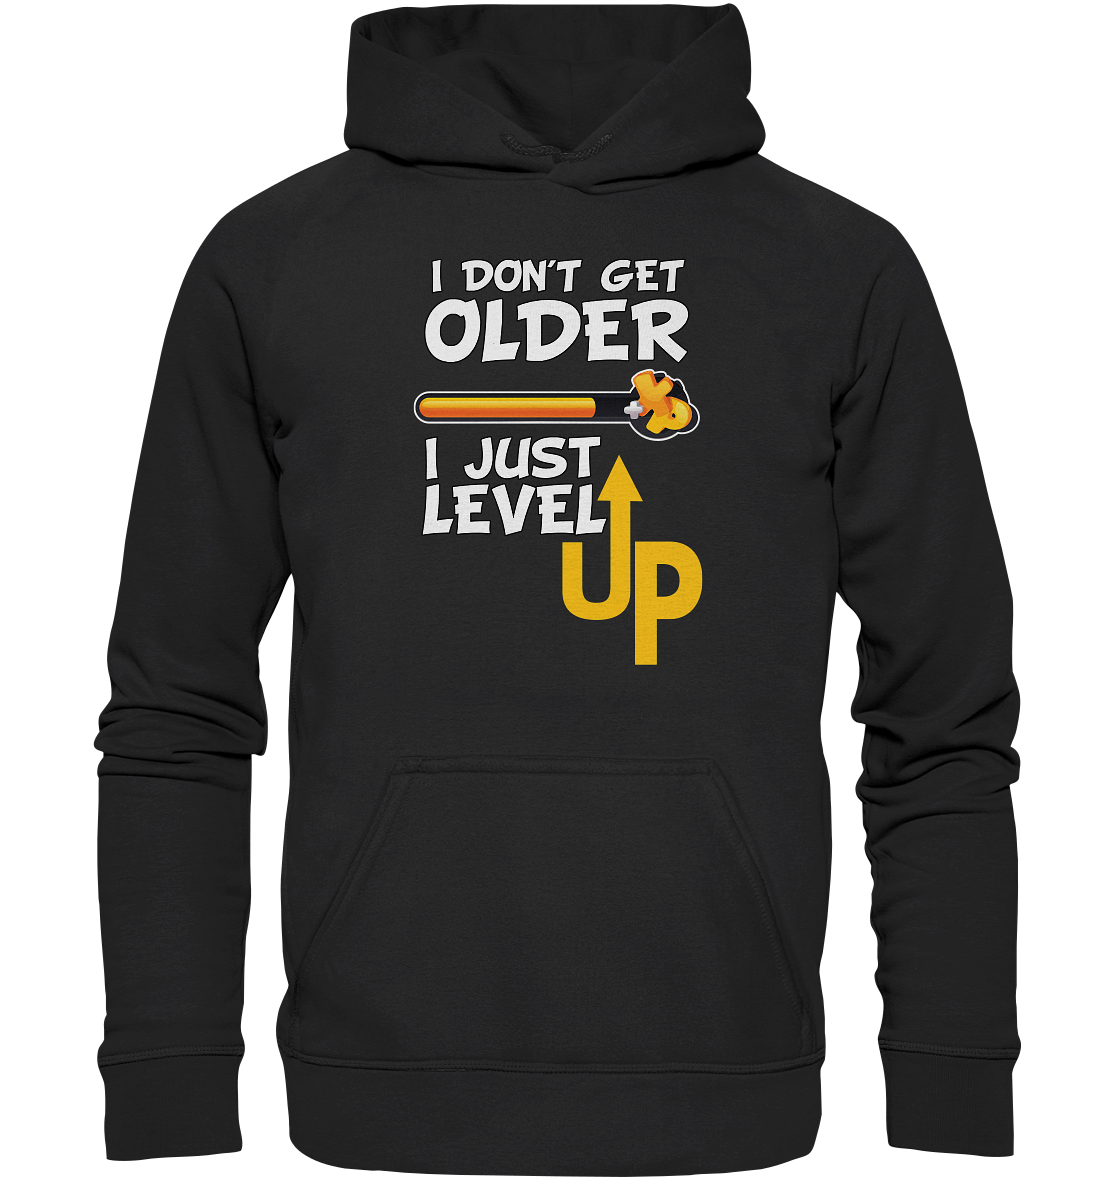 I Dont Get Older I Level UP Hoodie 3XL-5XL